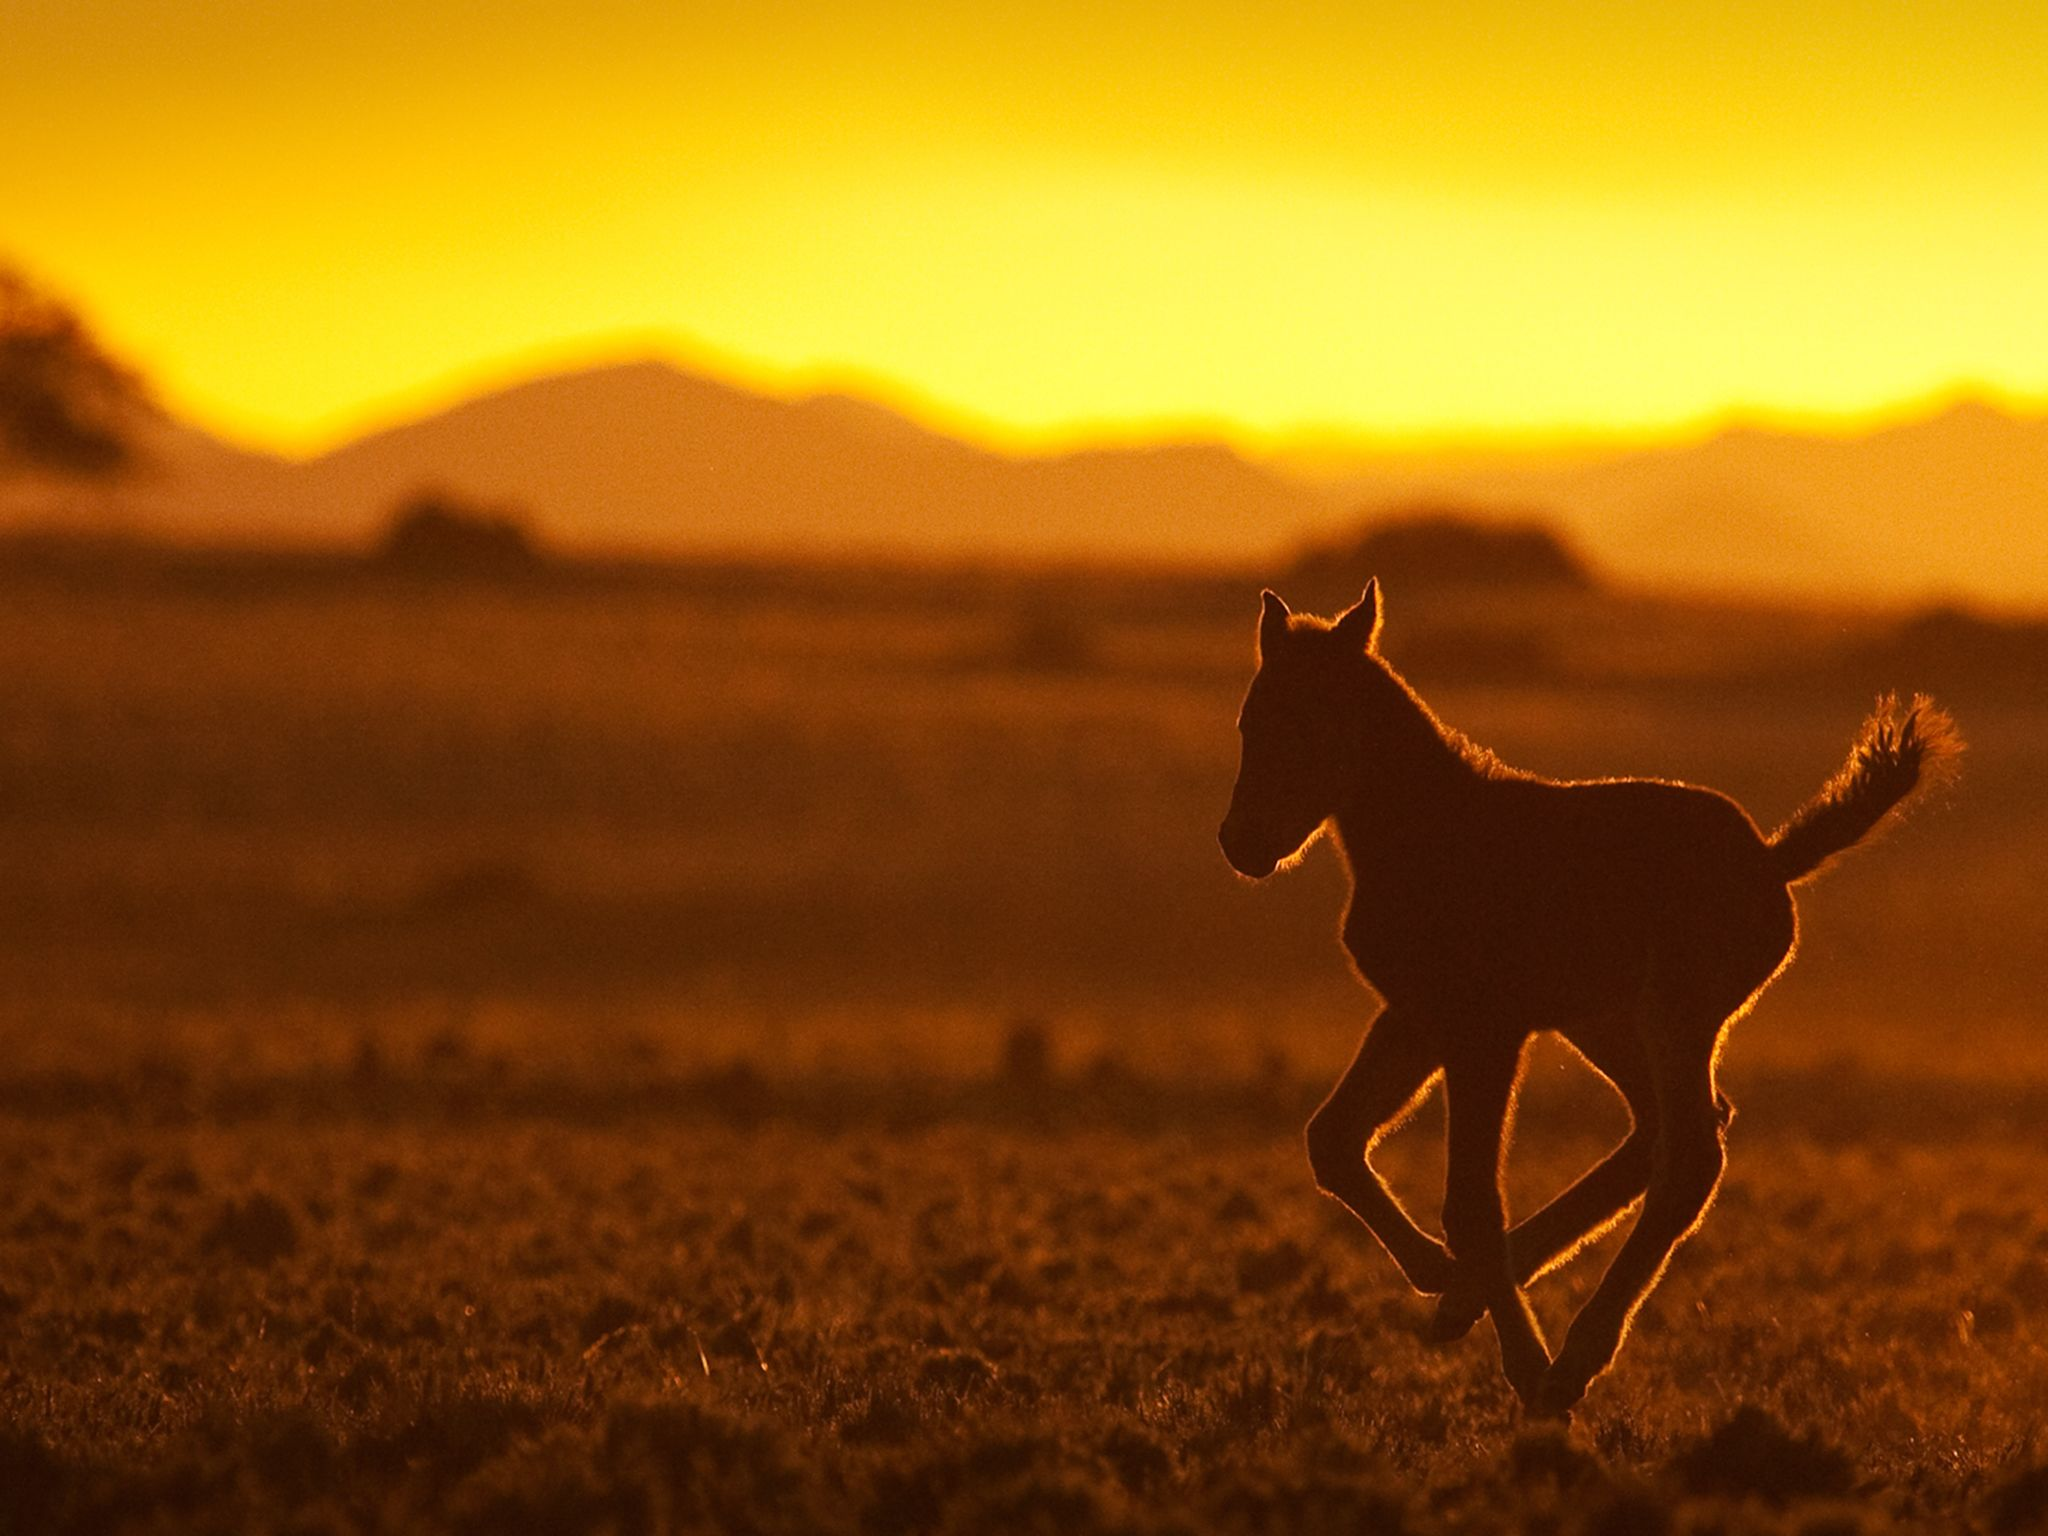 Namibia: A foal in the sunset. This image is from Africa's Wild West. [Photo of the day - آوریل 2015]